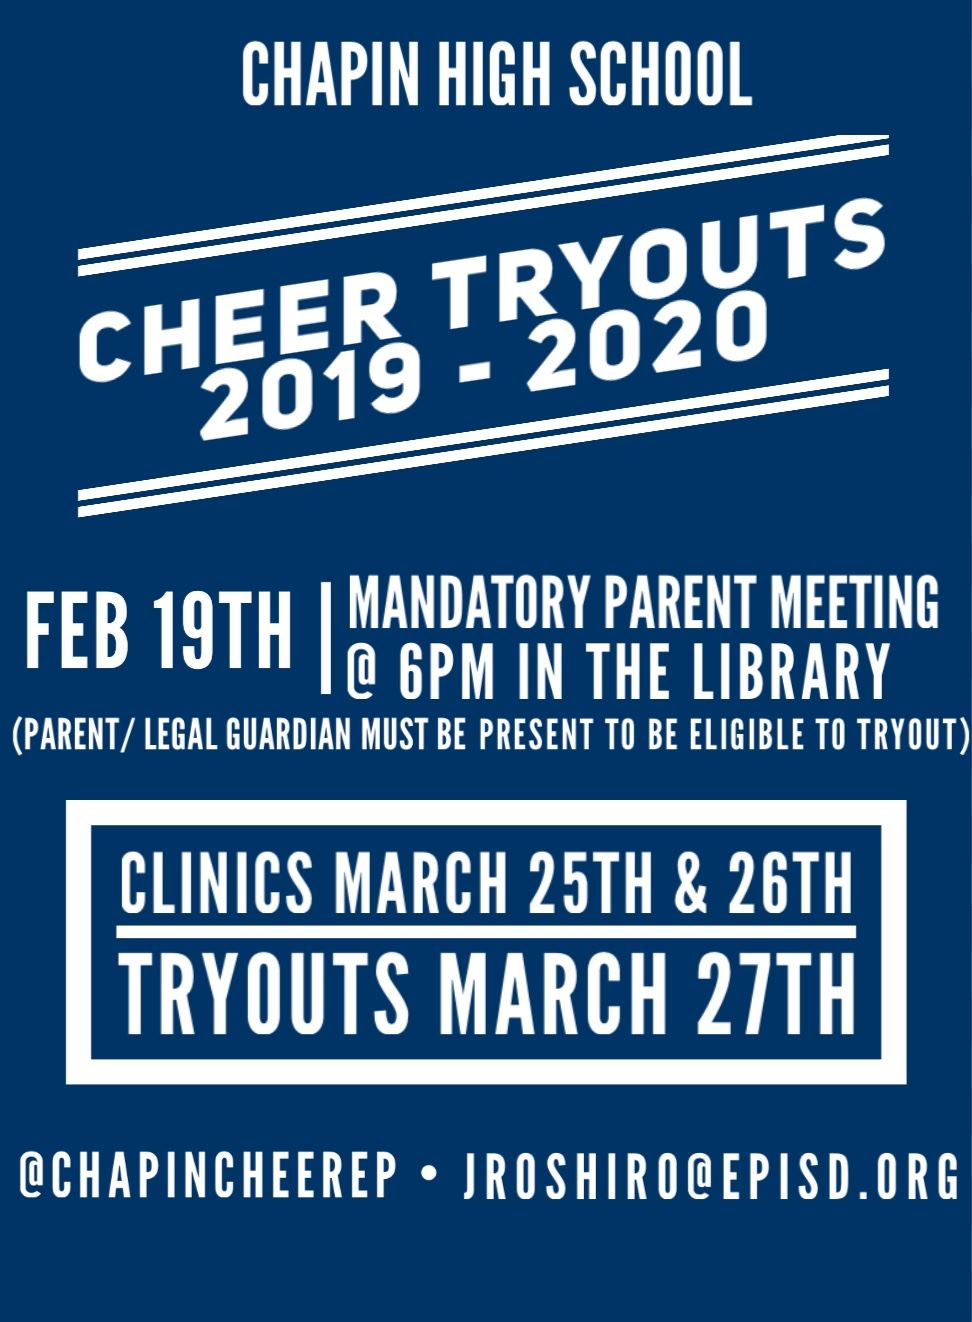 Cheer Tryouts in March